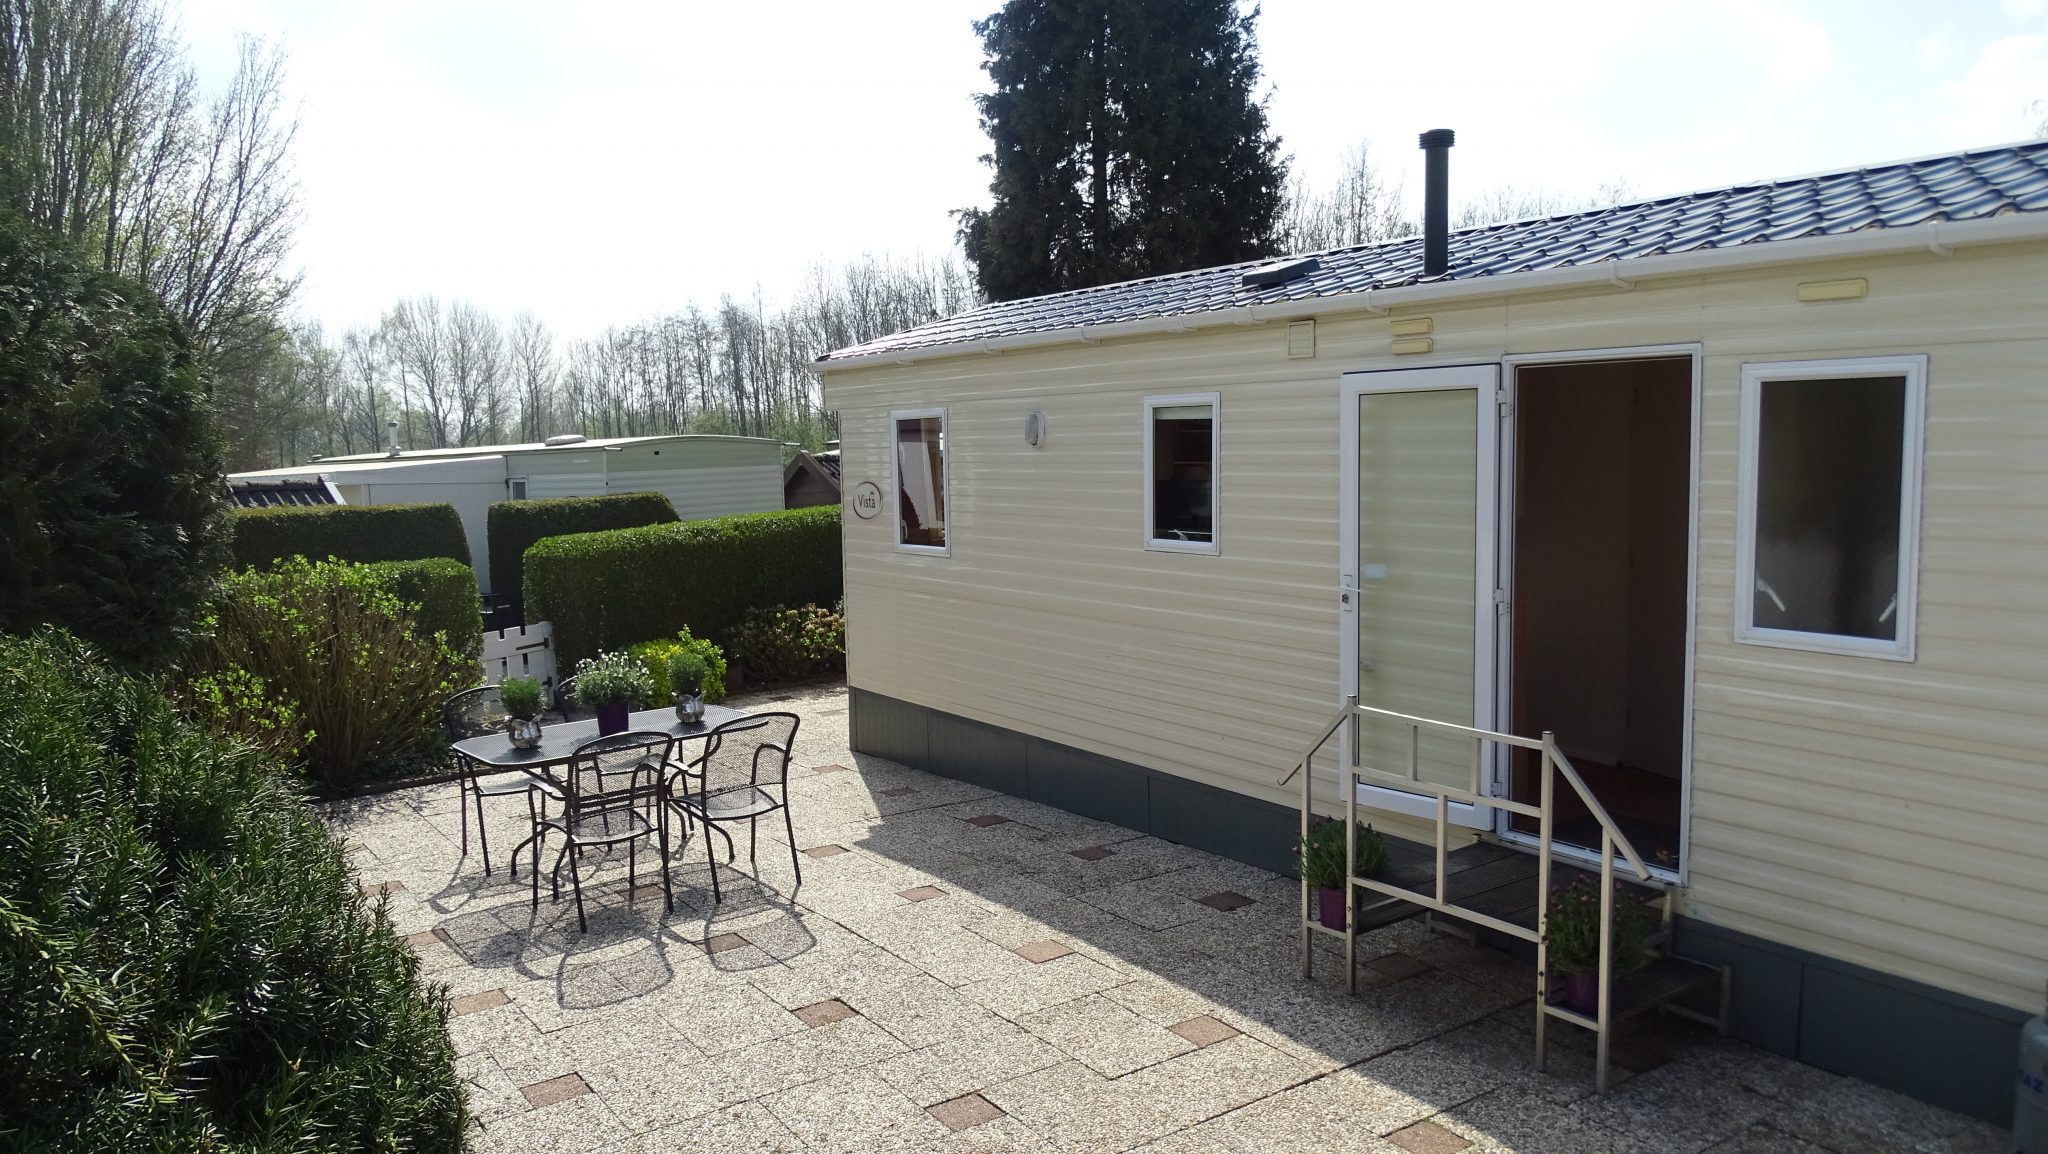 Chalet nr31 recreatieoord 39in den boomgaard39 for Chalet m bel pinie